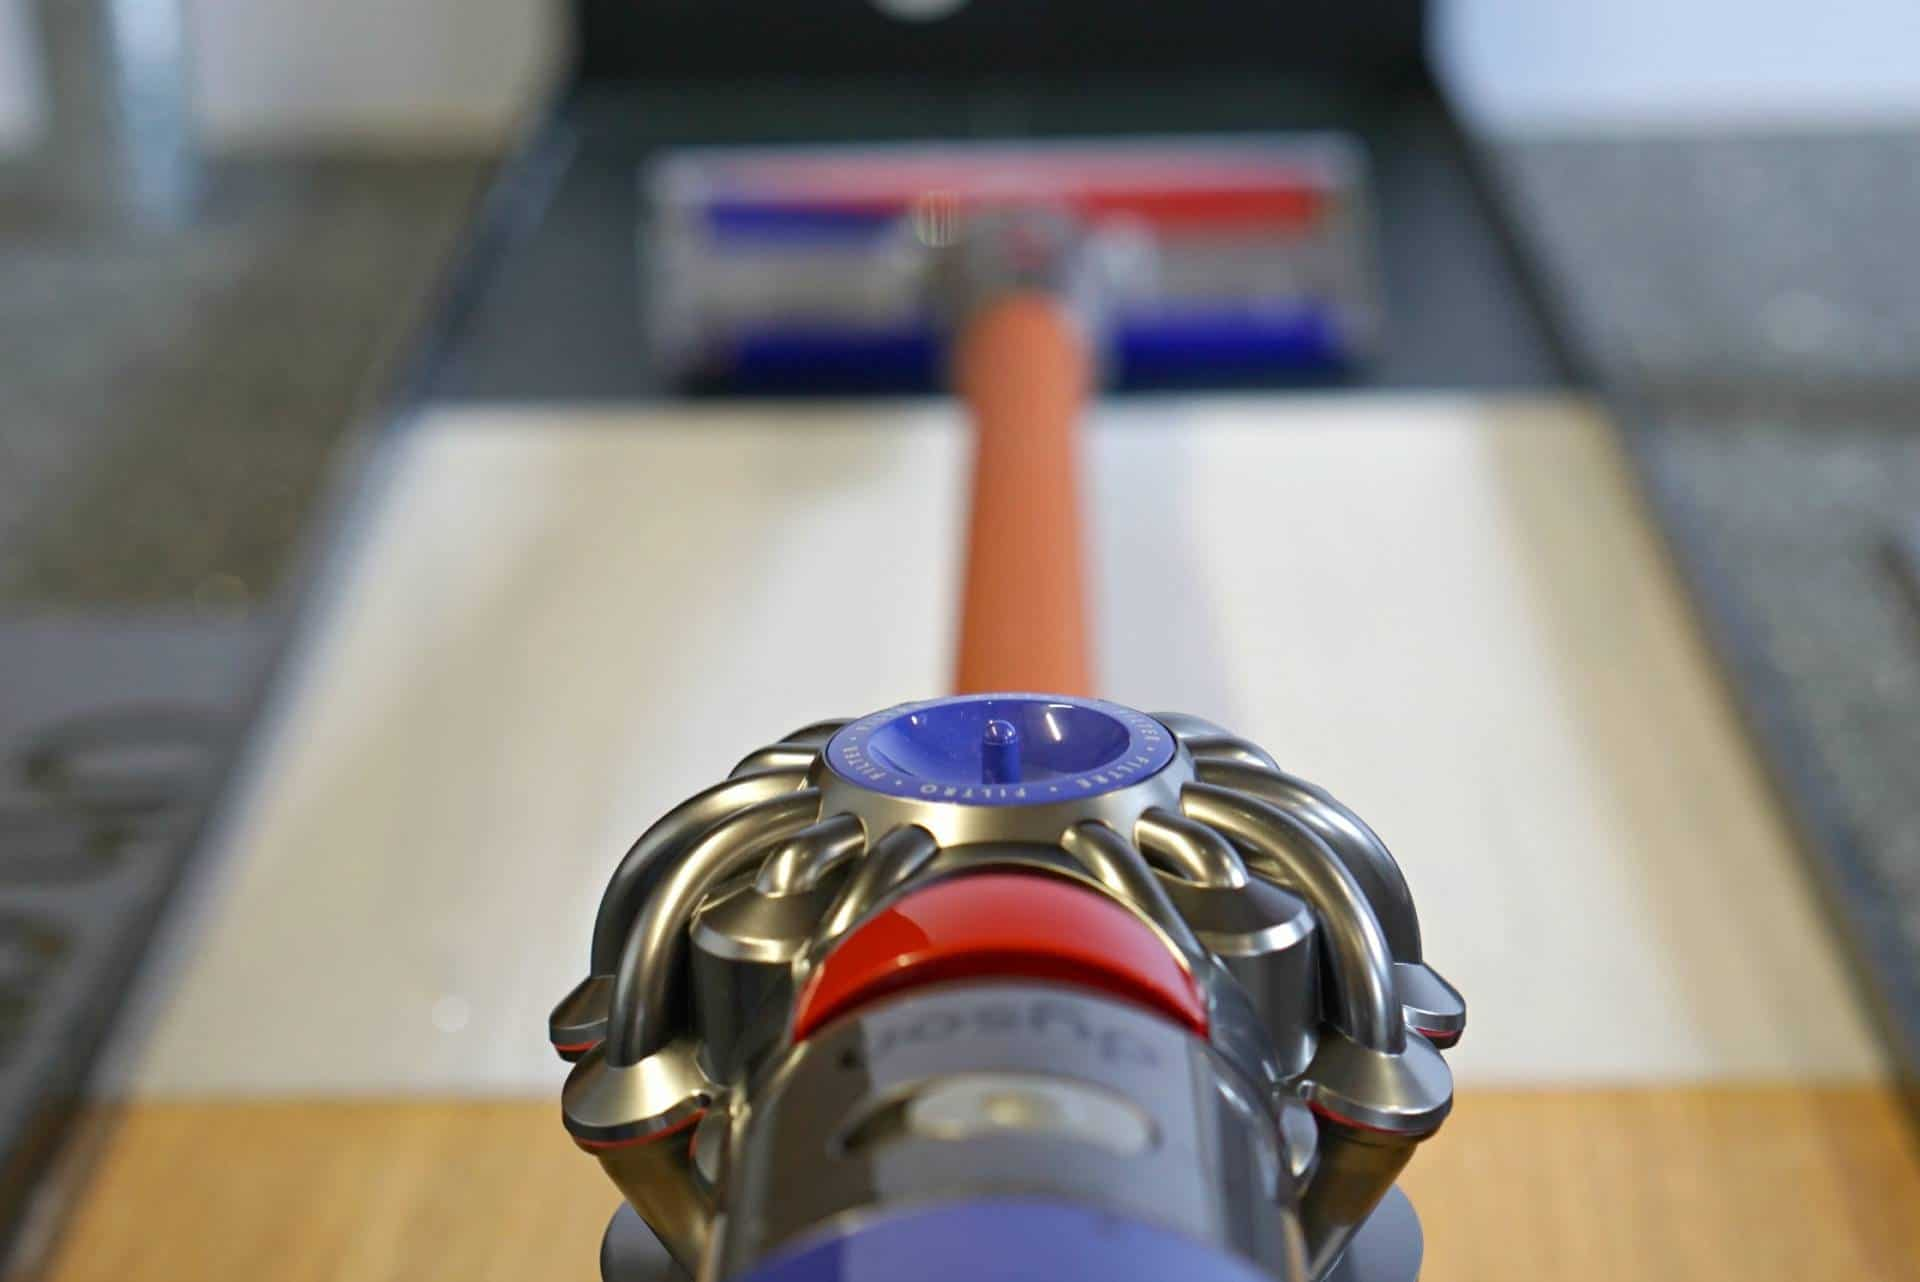 Learning About Dyson Technology with Dyson And Curry's